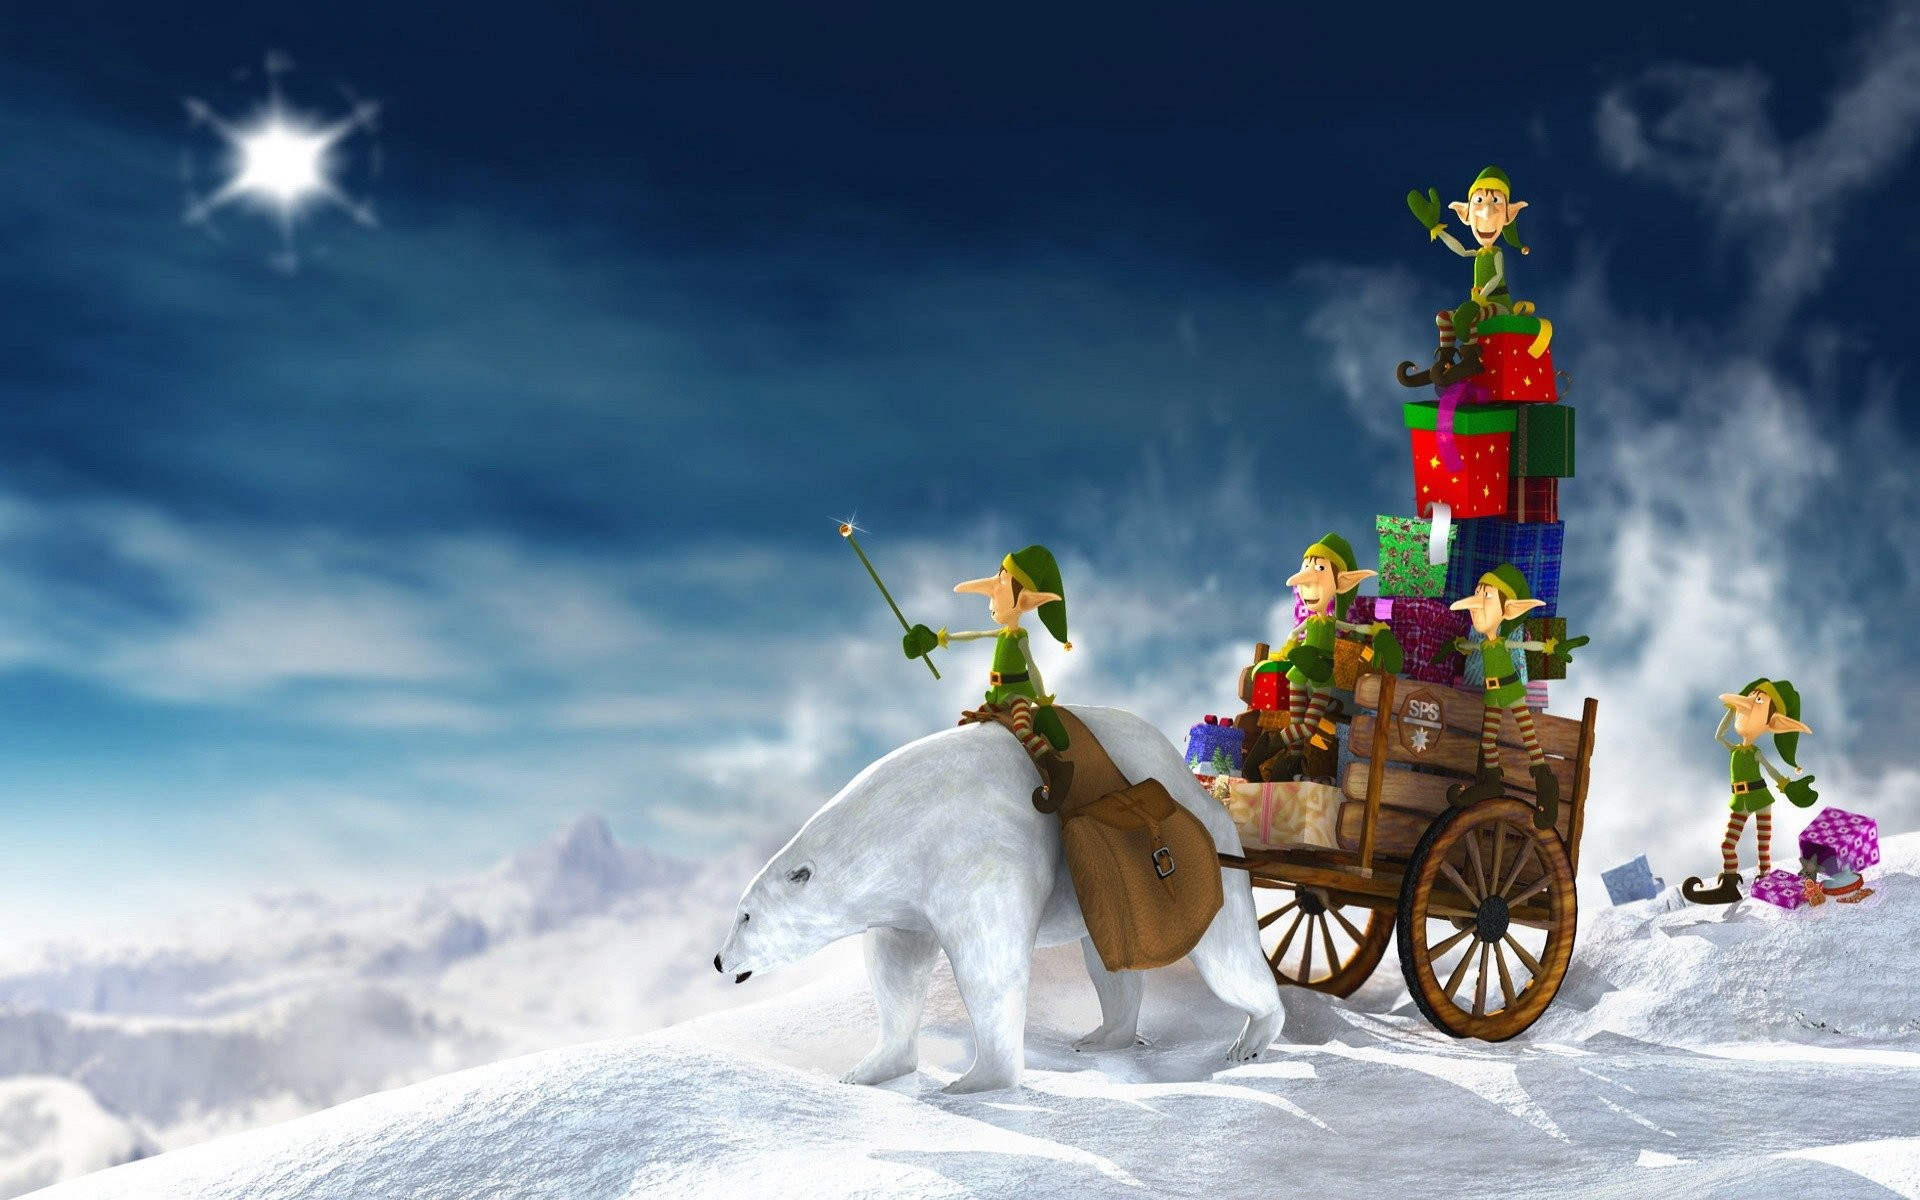 1920x1200 Christmas Wallpaper Elf : Wallpaper christmas elves and presents